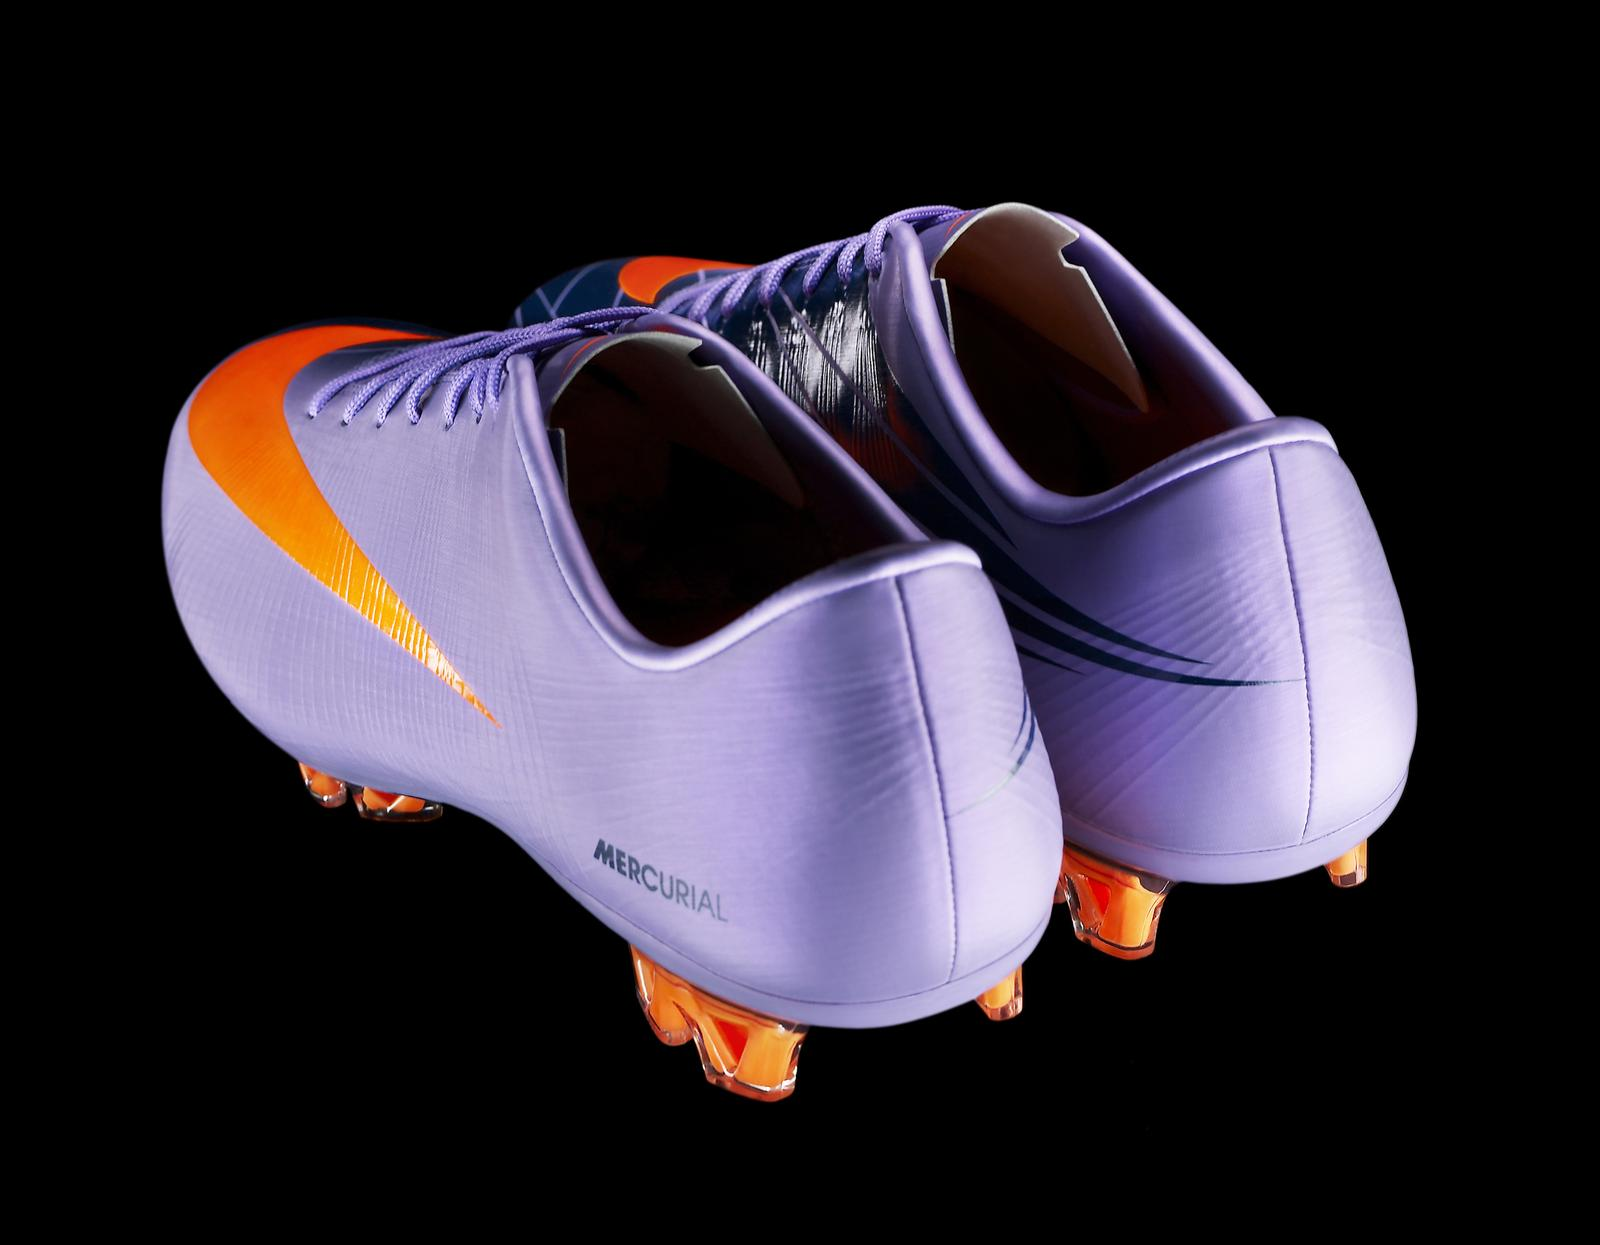 mercurial vapor superfly ii unveiled nike news. Black Bedroom Furniture Sets. Home Design Ideas